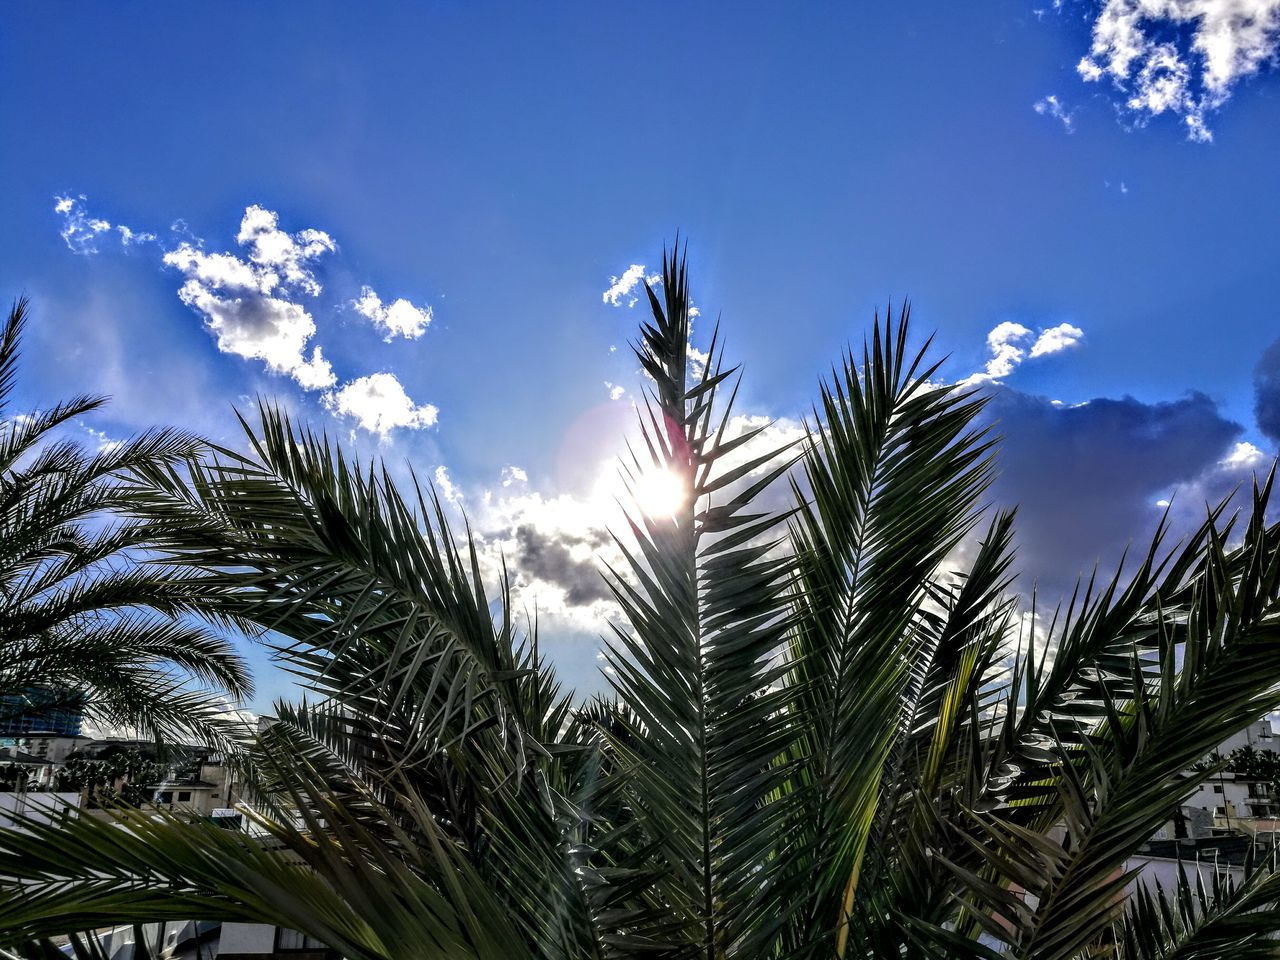 Blue sky with Palms... Growth Sunlight Nature Sunset Sky Outdoors Beauty In Nature Day PalmaDiMaiorca GetbetterwithAlex Trees And Nature Originalpicture Palms